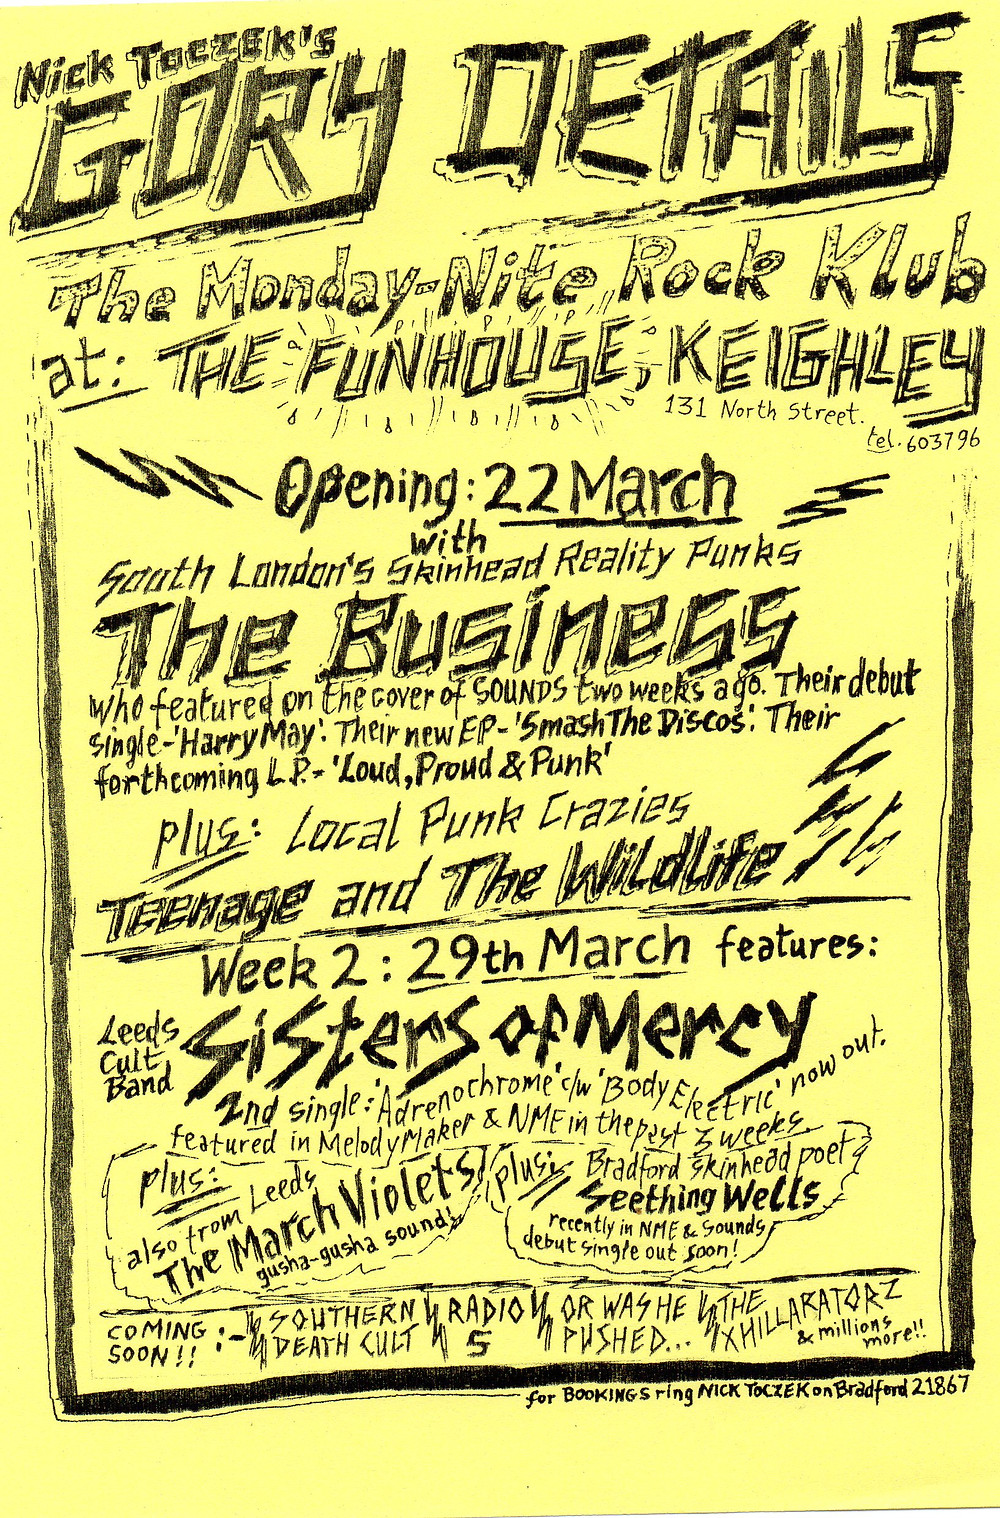 The first of many flyers advertising gigs put on by Nick, and it started at the Funhouse, Keighley.